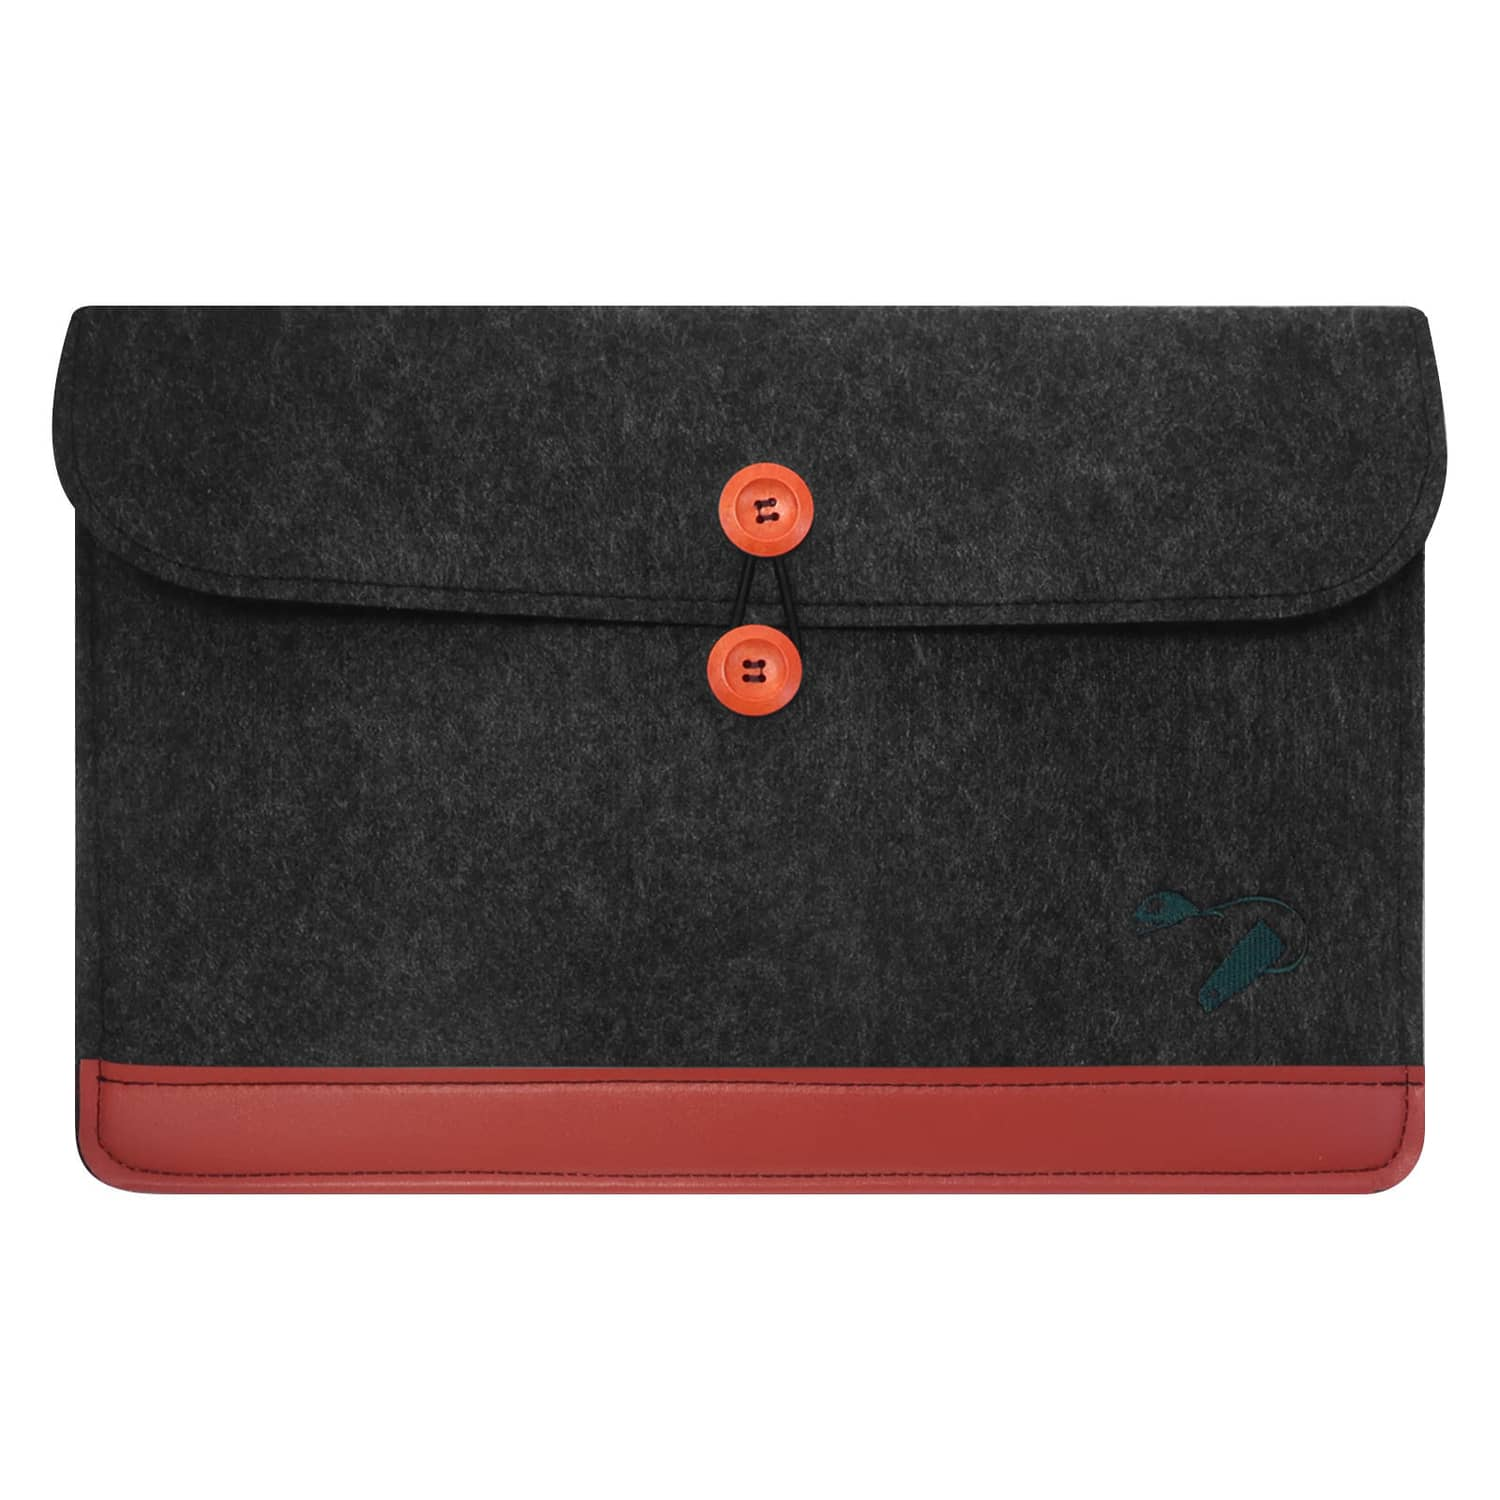 Felt case Laptop - darkgrey limited - bottom leather 1